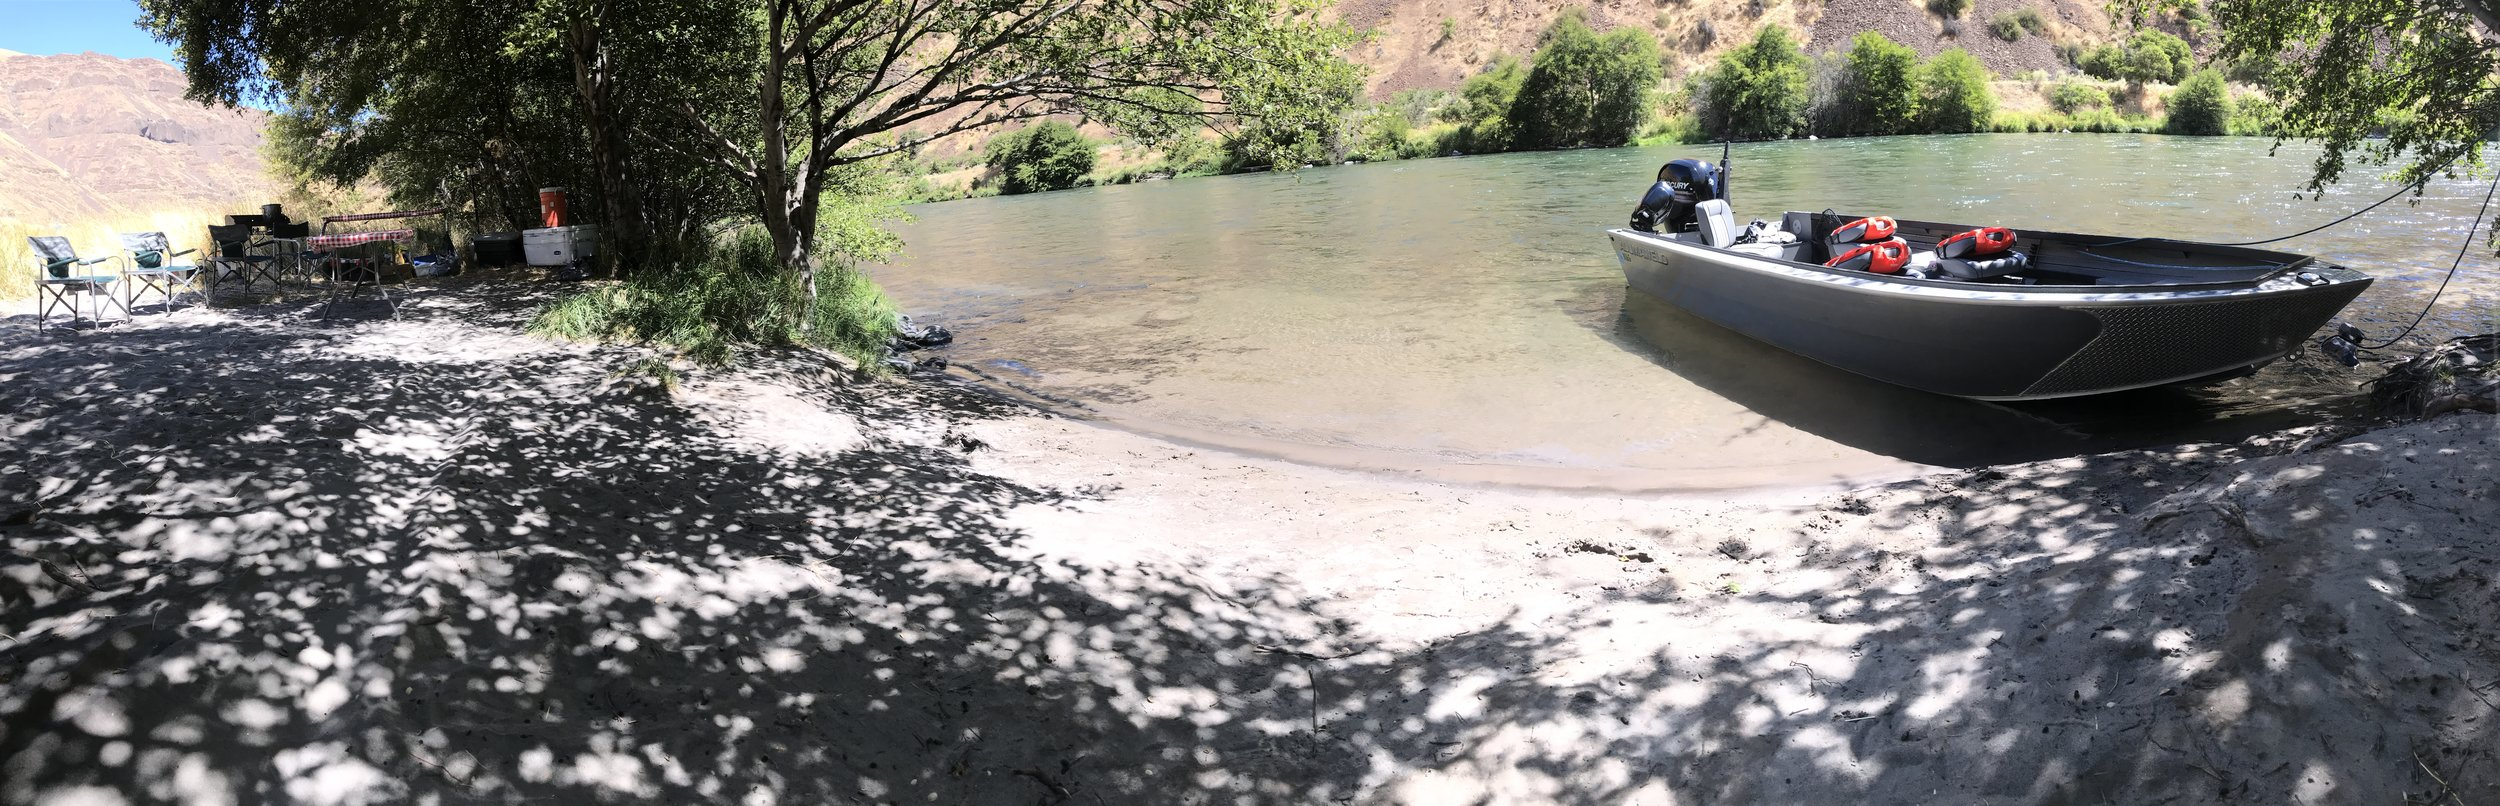 steelhead jet boat camp on the Deschutes River